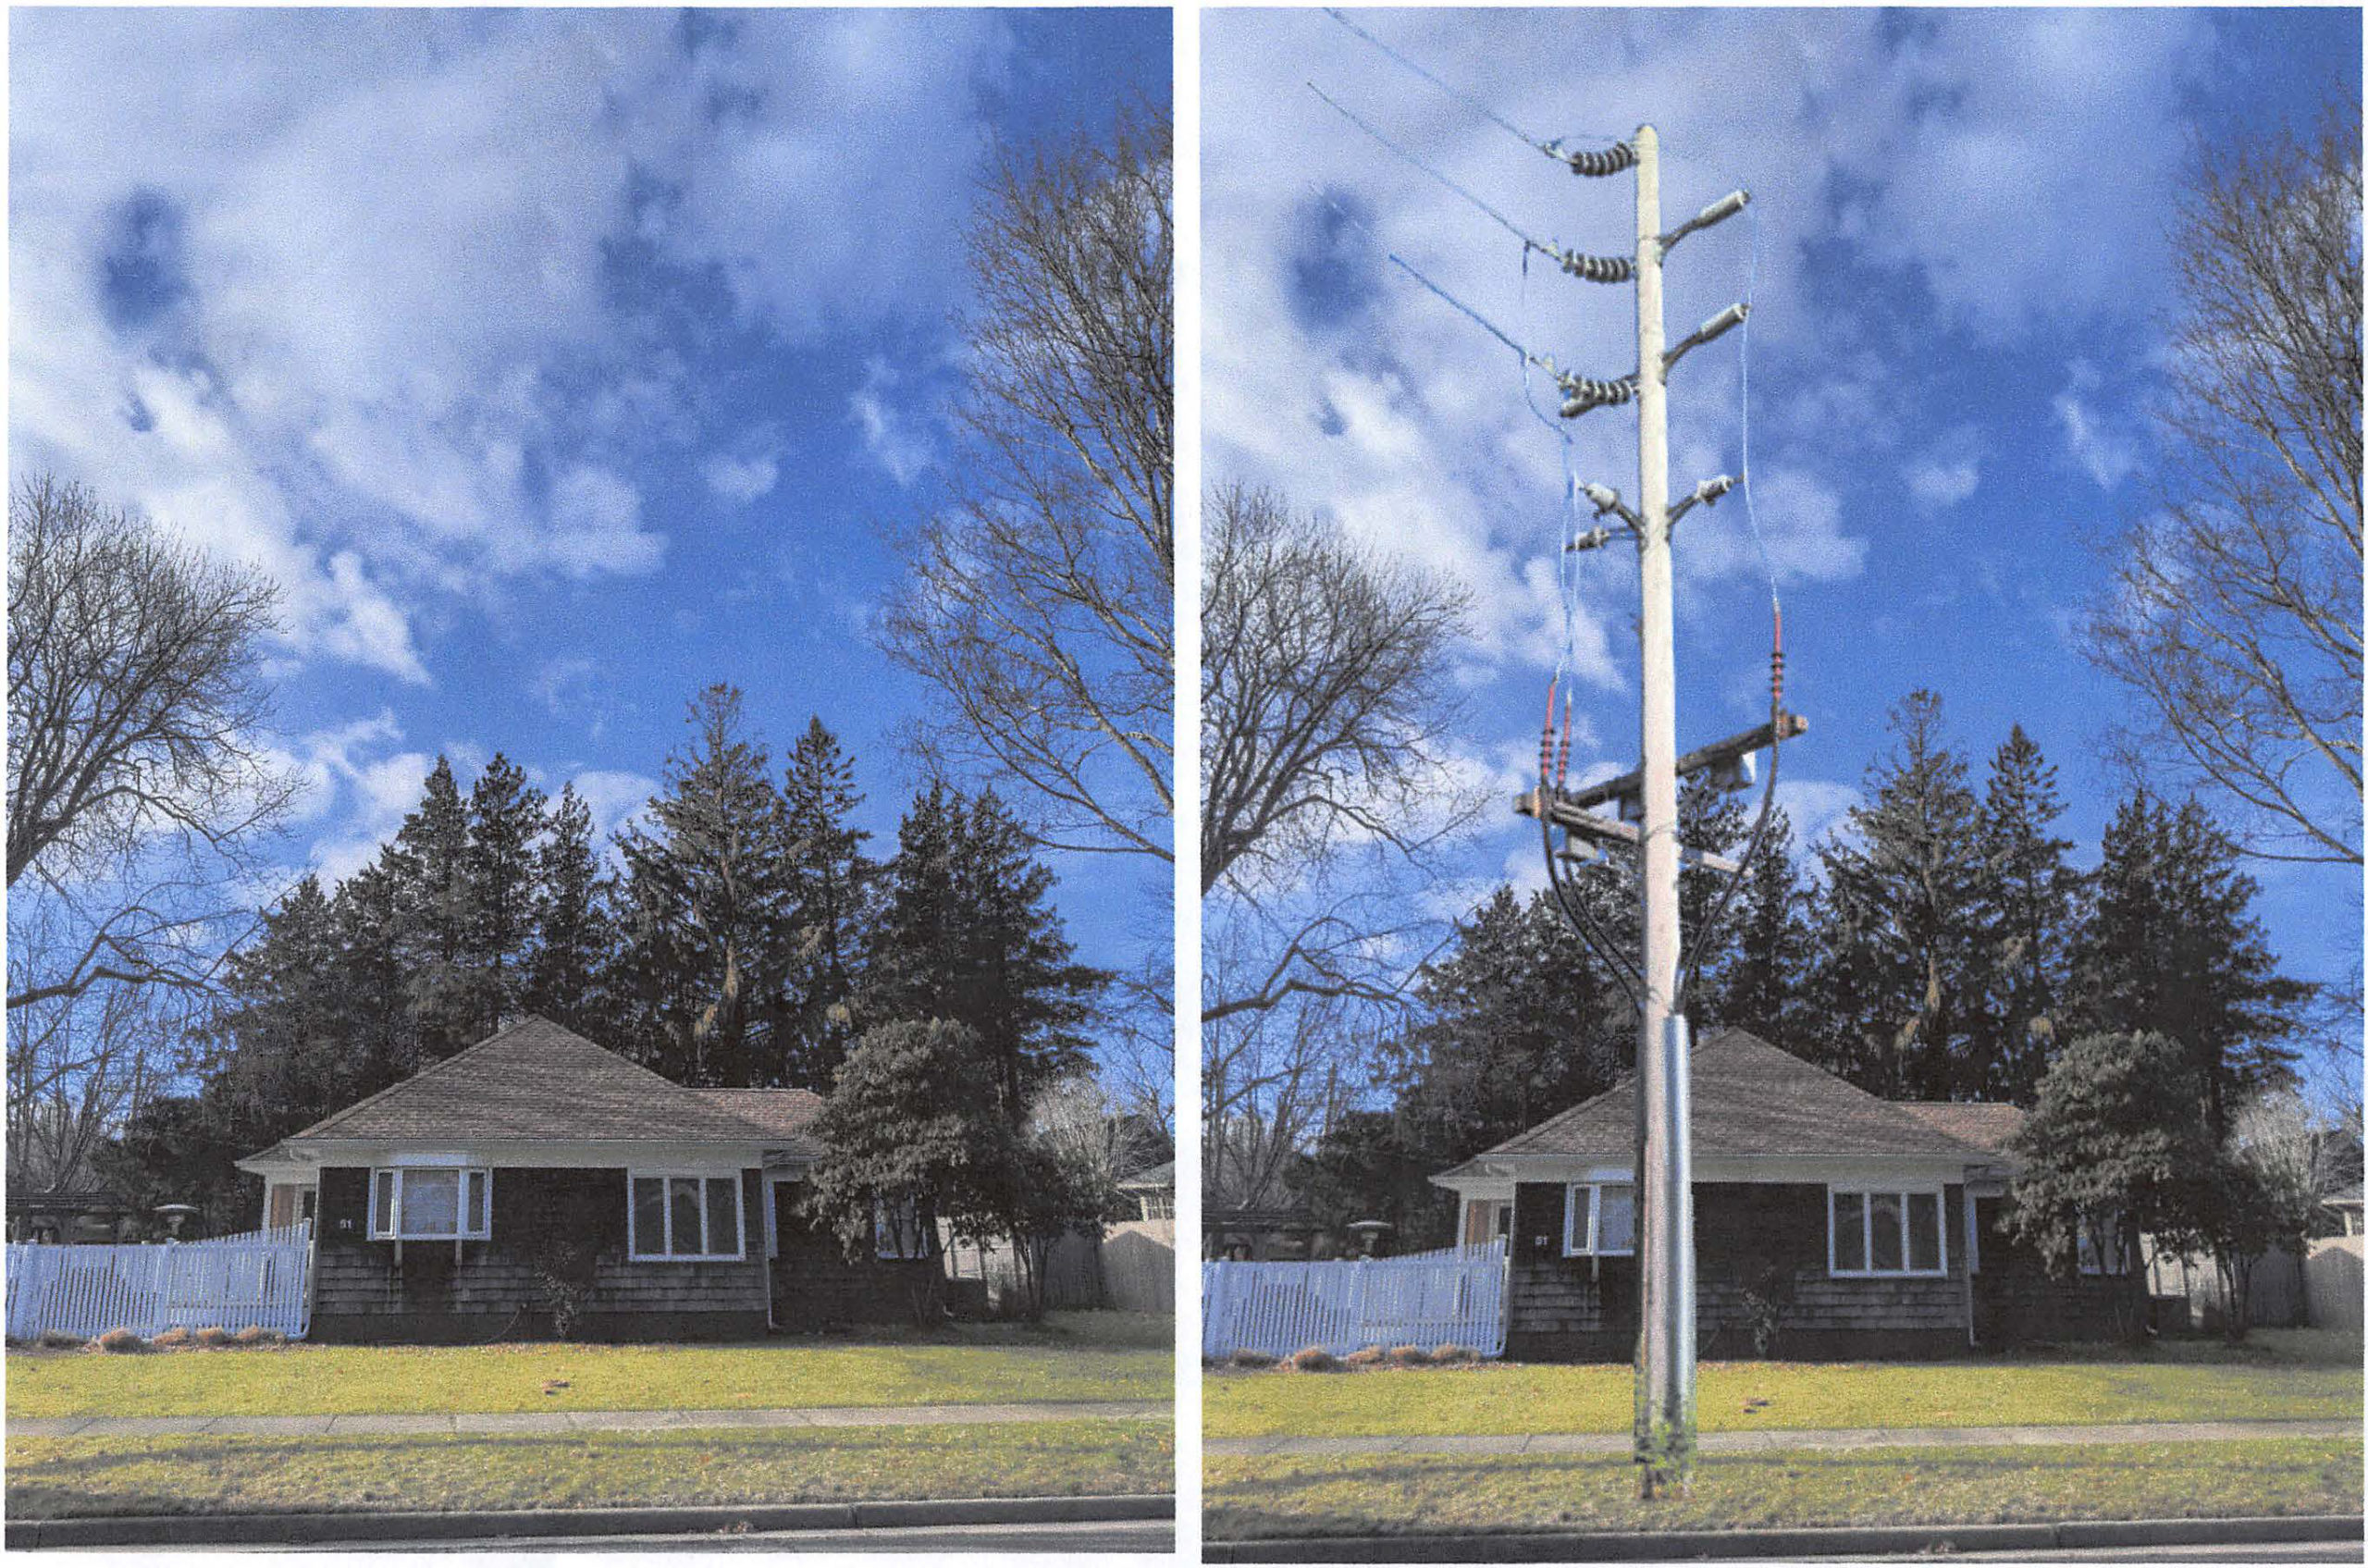 A rendering of what the riser pole in front of the Ujvaris' home would look like, according to their attorney.